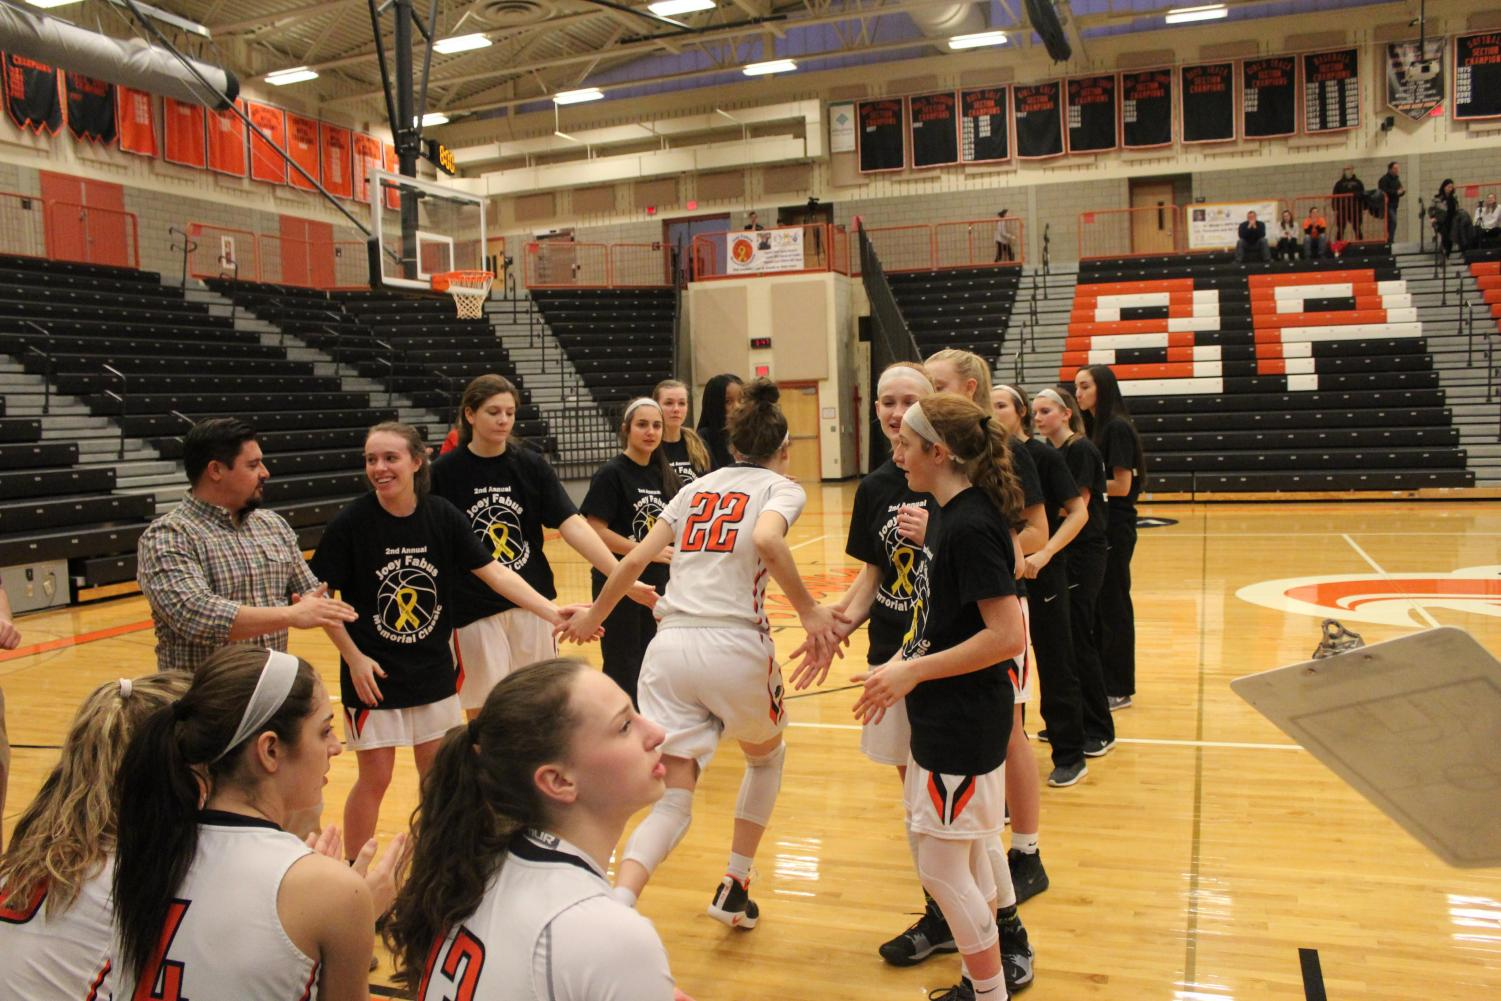 Olivia Westphal makes her way through the team tunnel during introductions to the Lady Hawks' game vs. West A on Jan. 26.